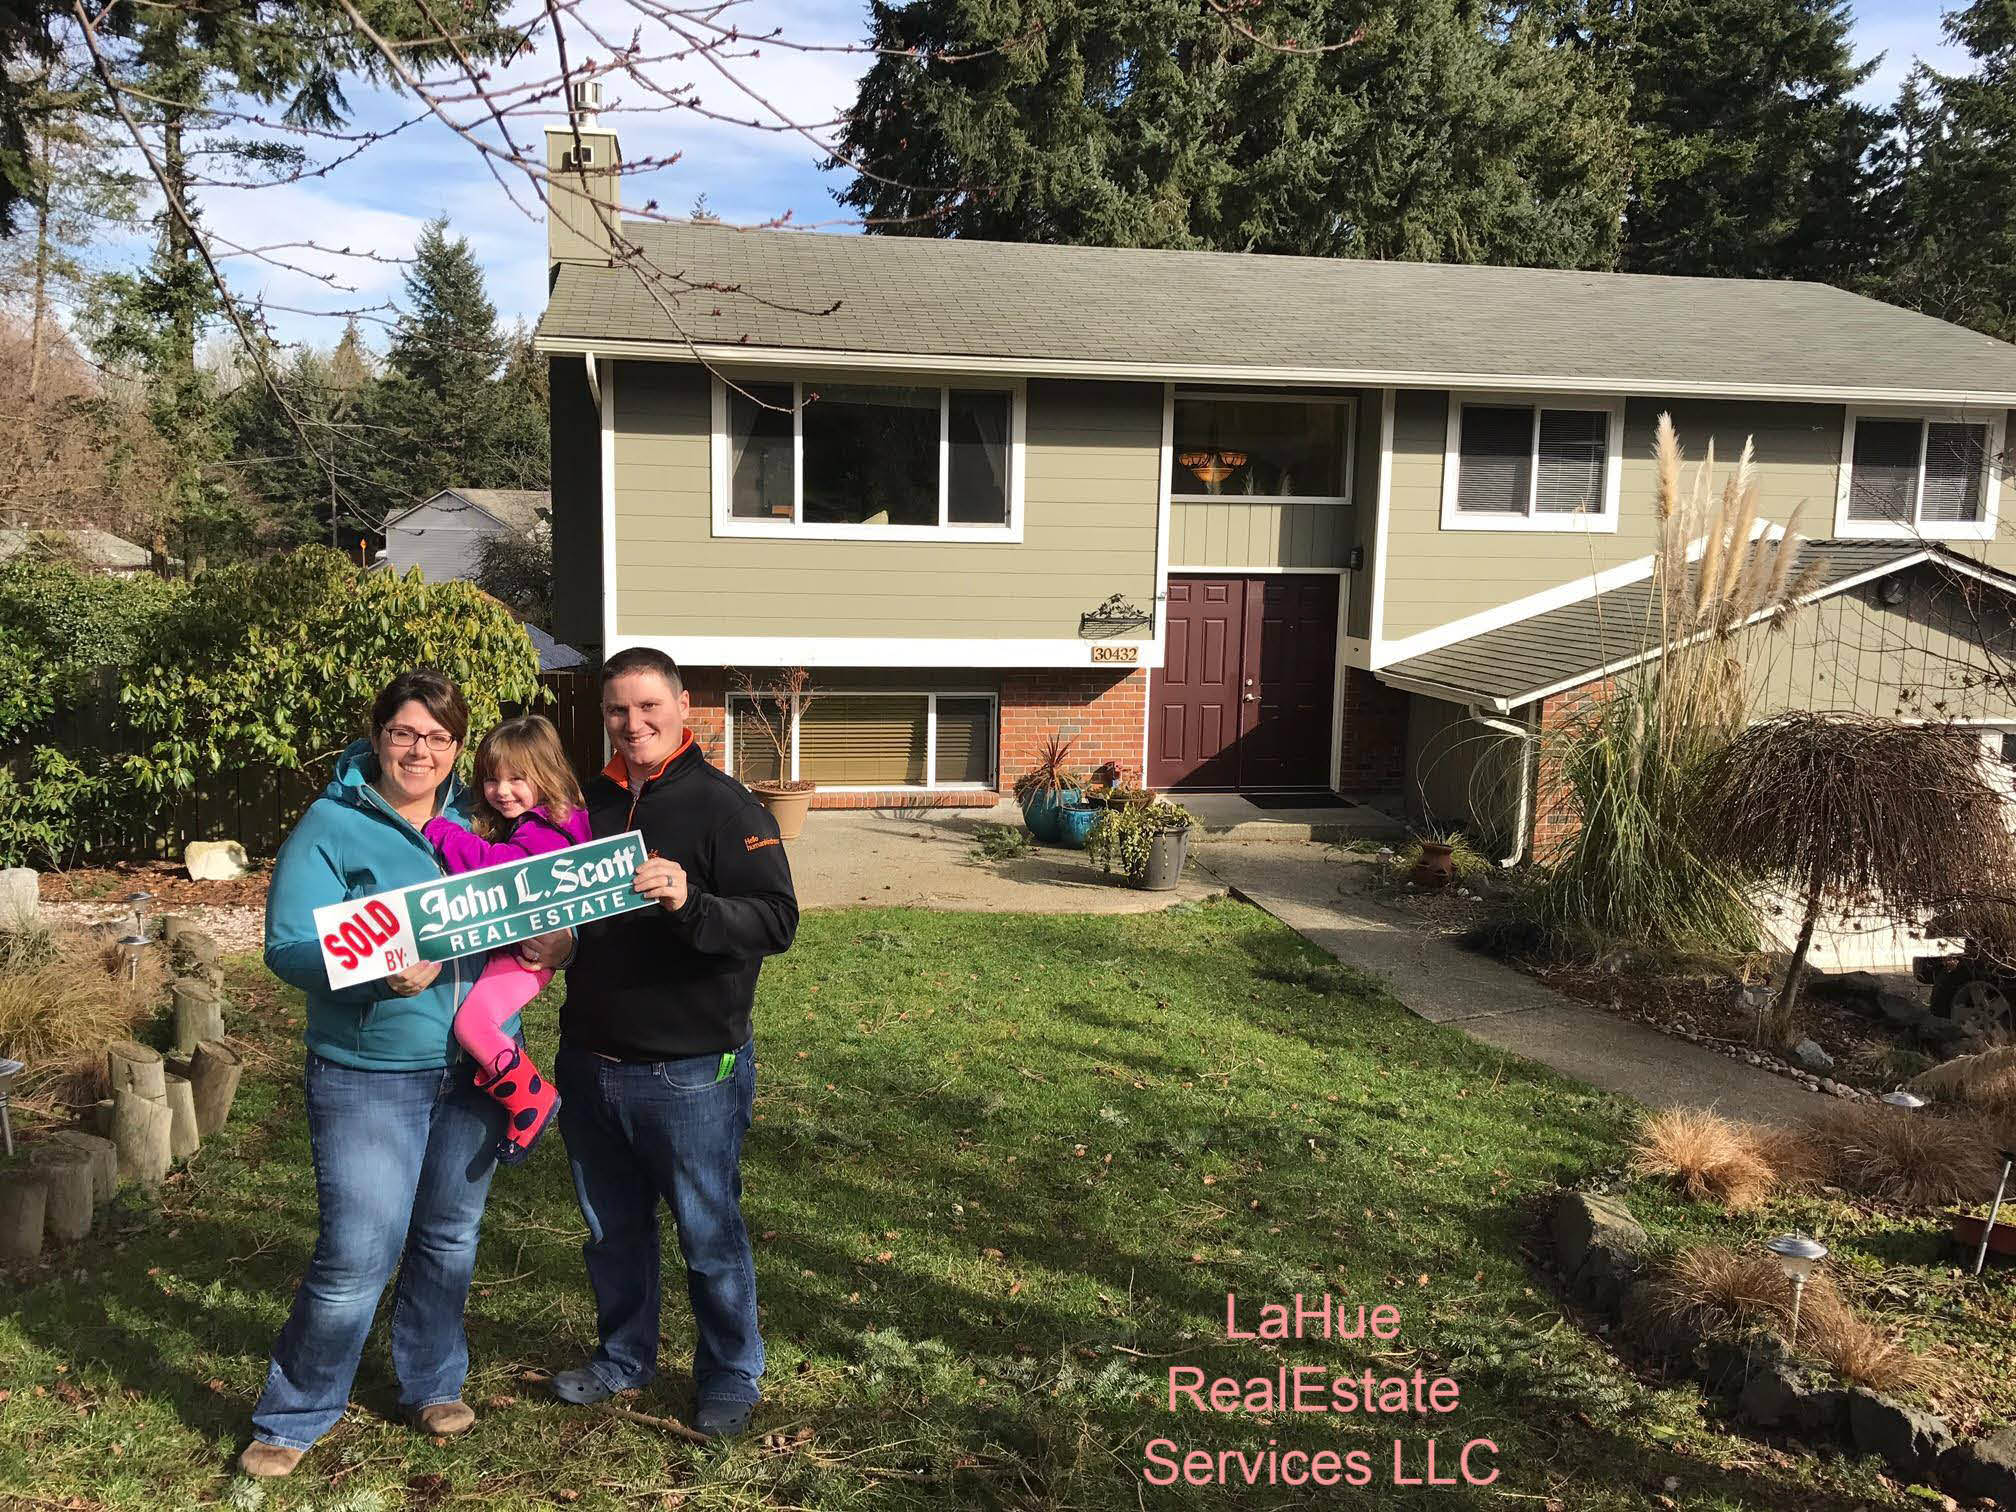 Happy family standing in front of their new home that they bought through John L. Scott Real Estate Company of Des Moines, WA